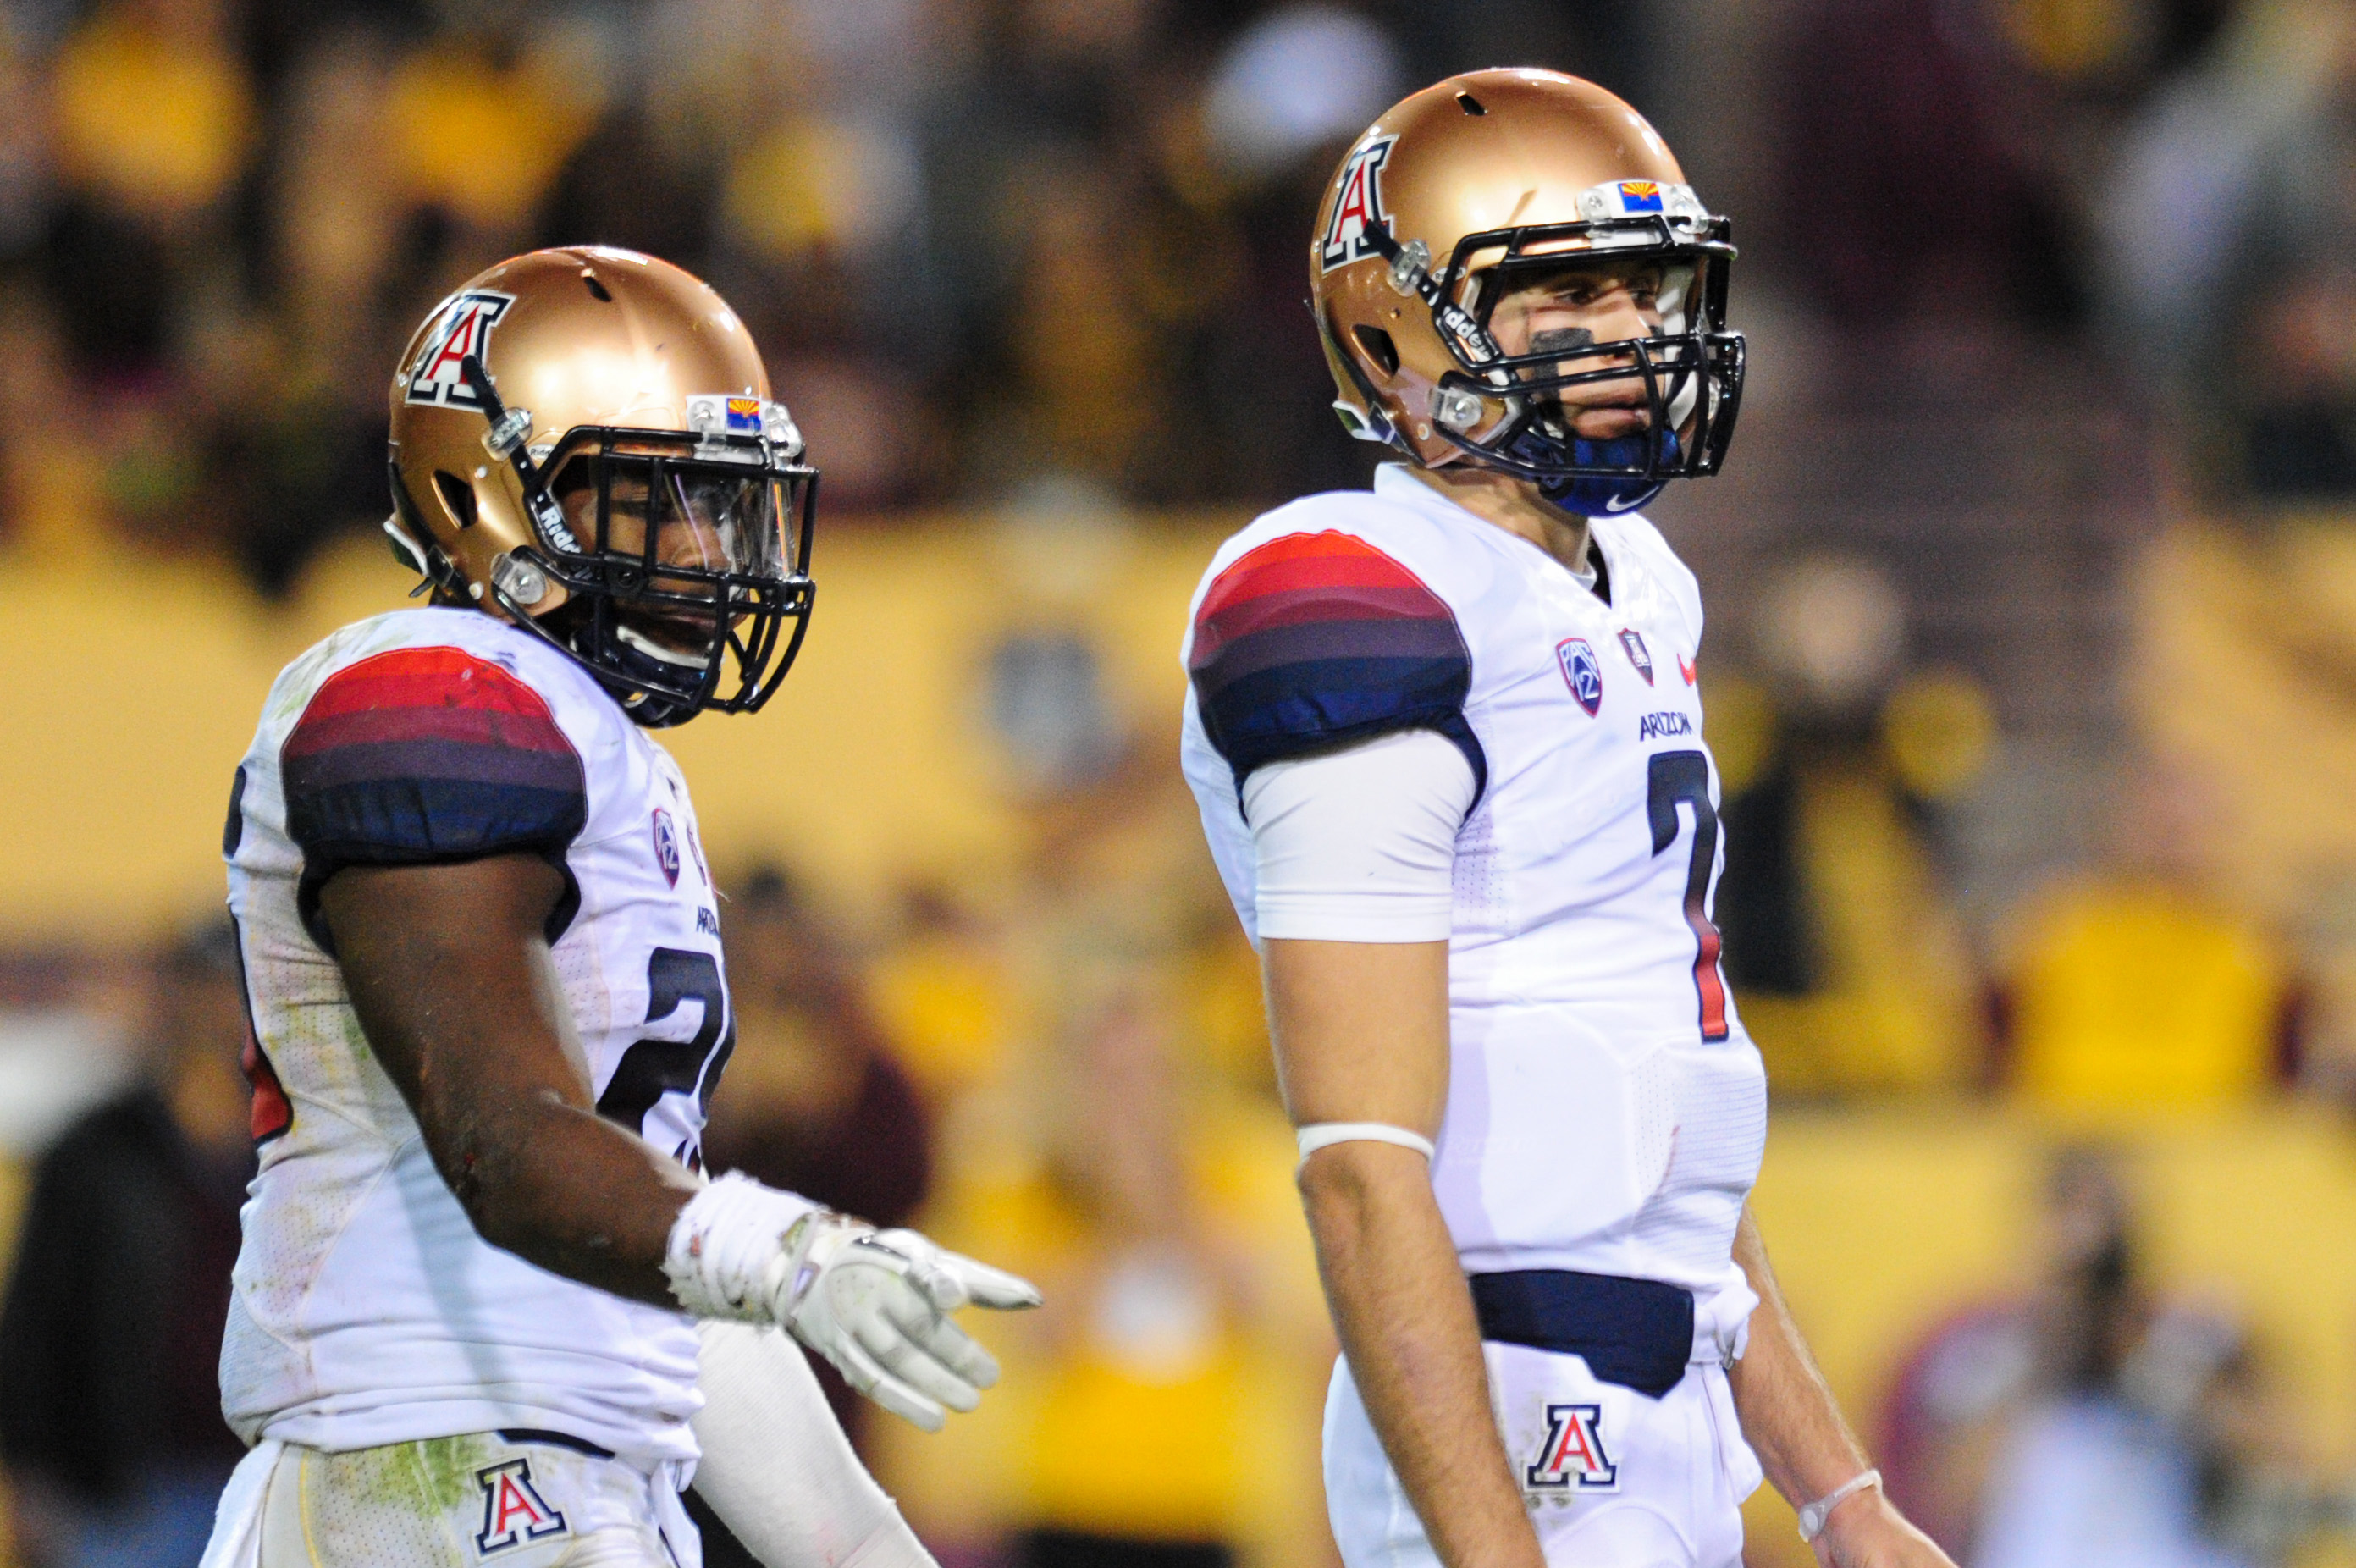 Nov 30, 2013; Tempe, AZ, USA; Arizona Wildcats quarterback B.J. Denker (7) and running back Ka'Deem Carey (25) look on during the first half against the Arizona State Sun Devils in the 87th annual Territorial Cup at Sun Devil Stadium. (Matt Kartozian-USA TODAY Sports)